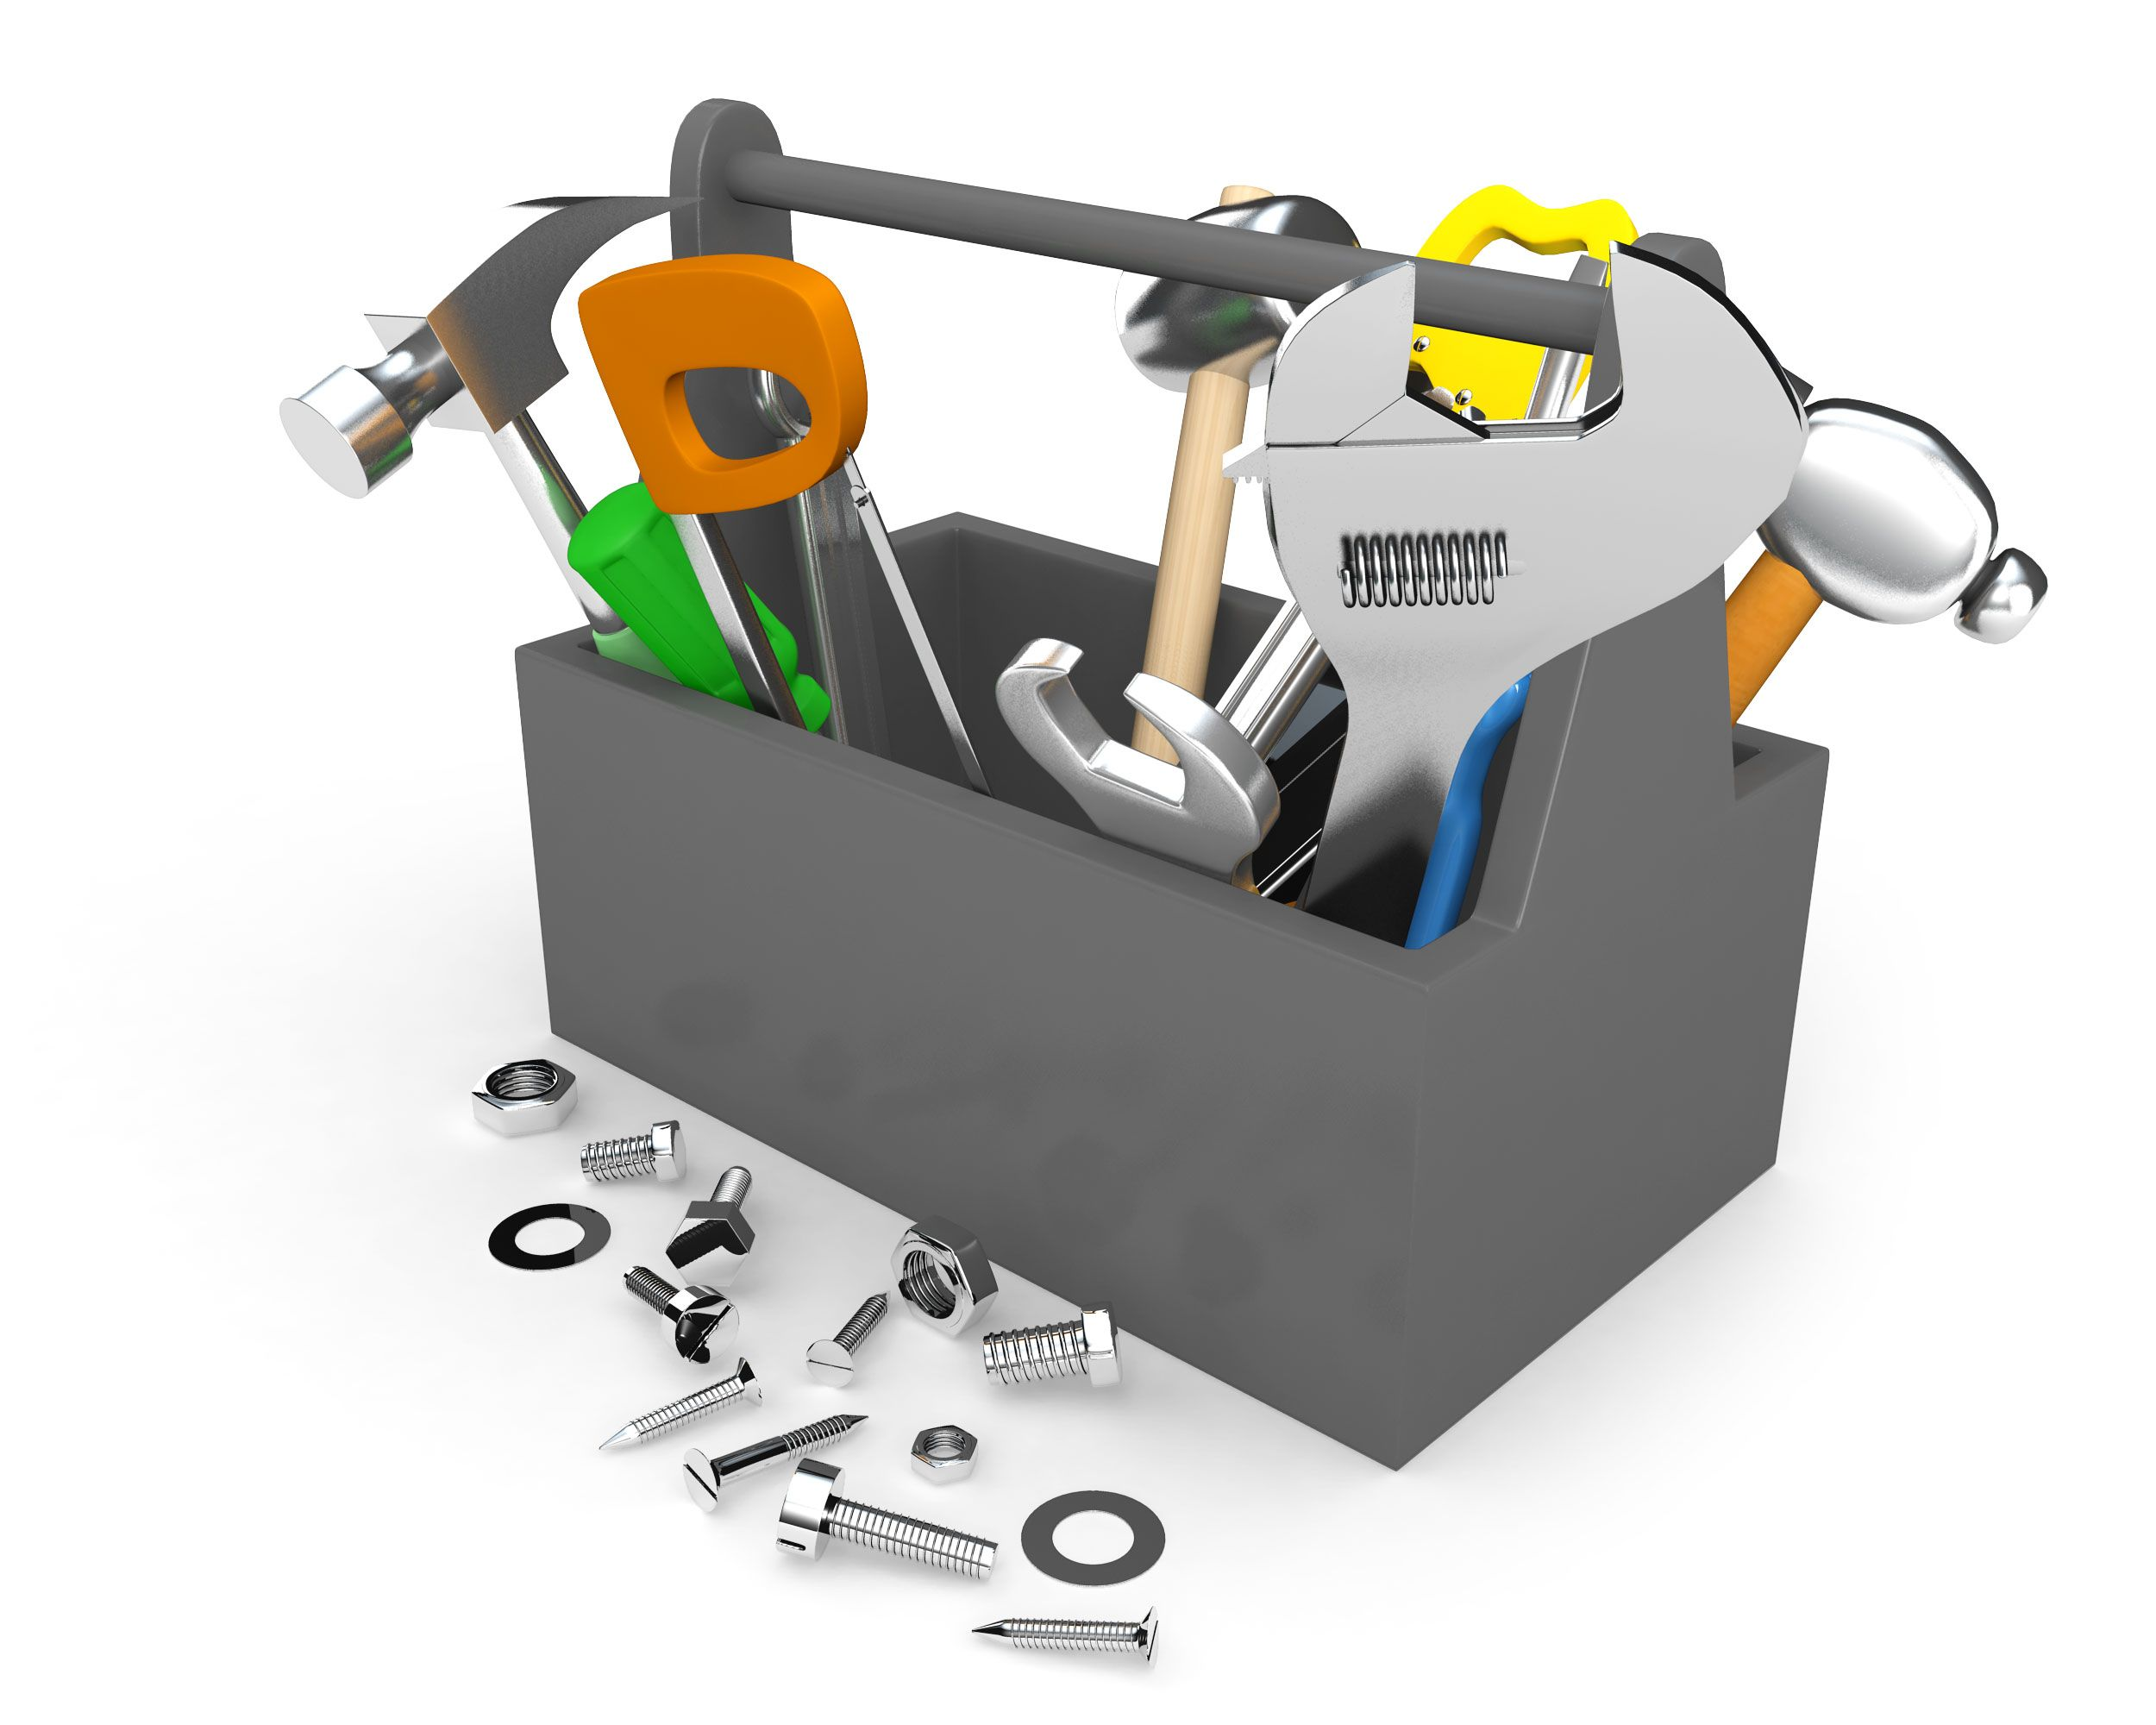 tool_box_with_hammer_wrench_spanner_with_nut_bolts_kit_stock_photo_Slide01